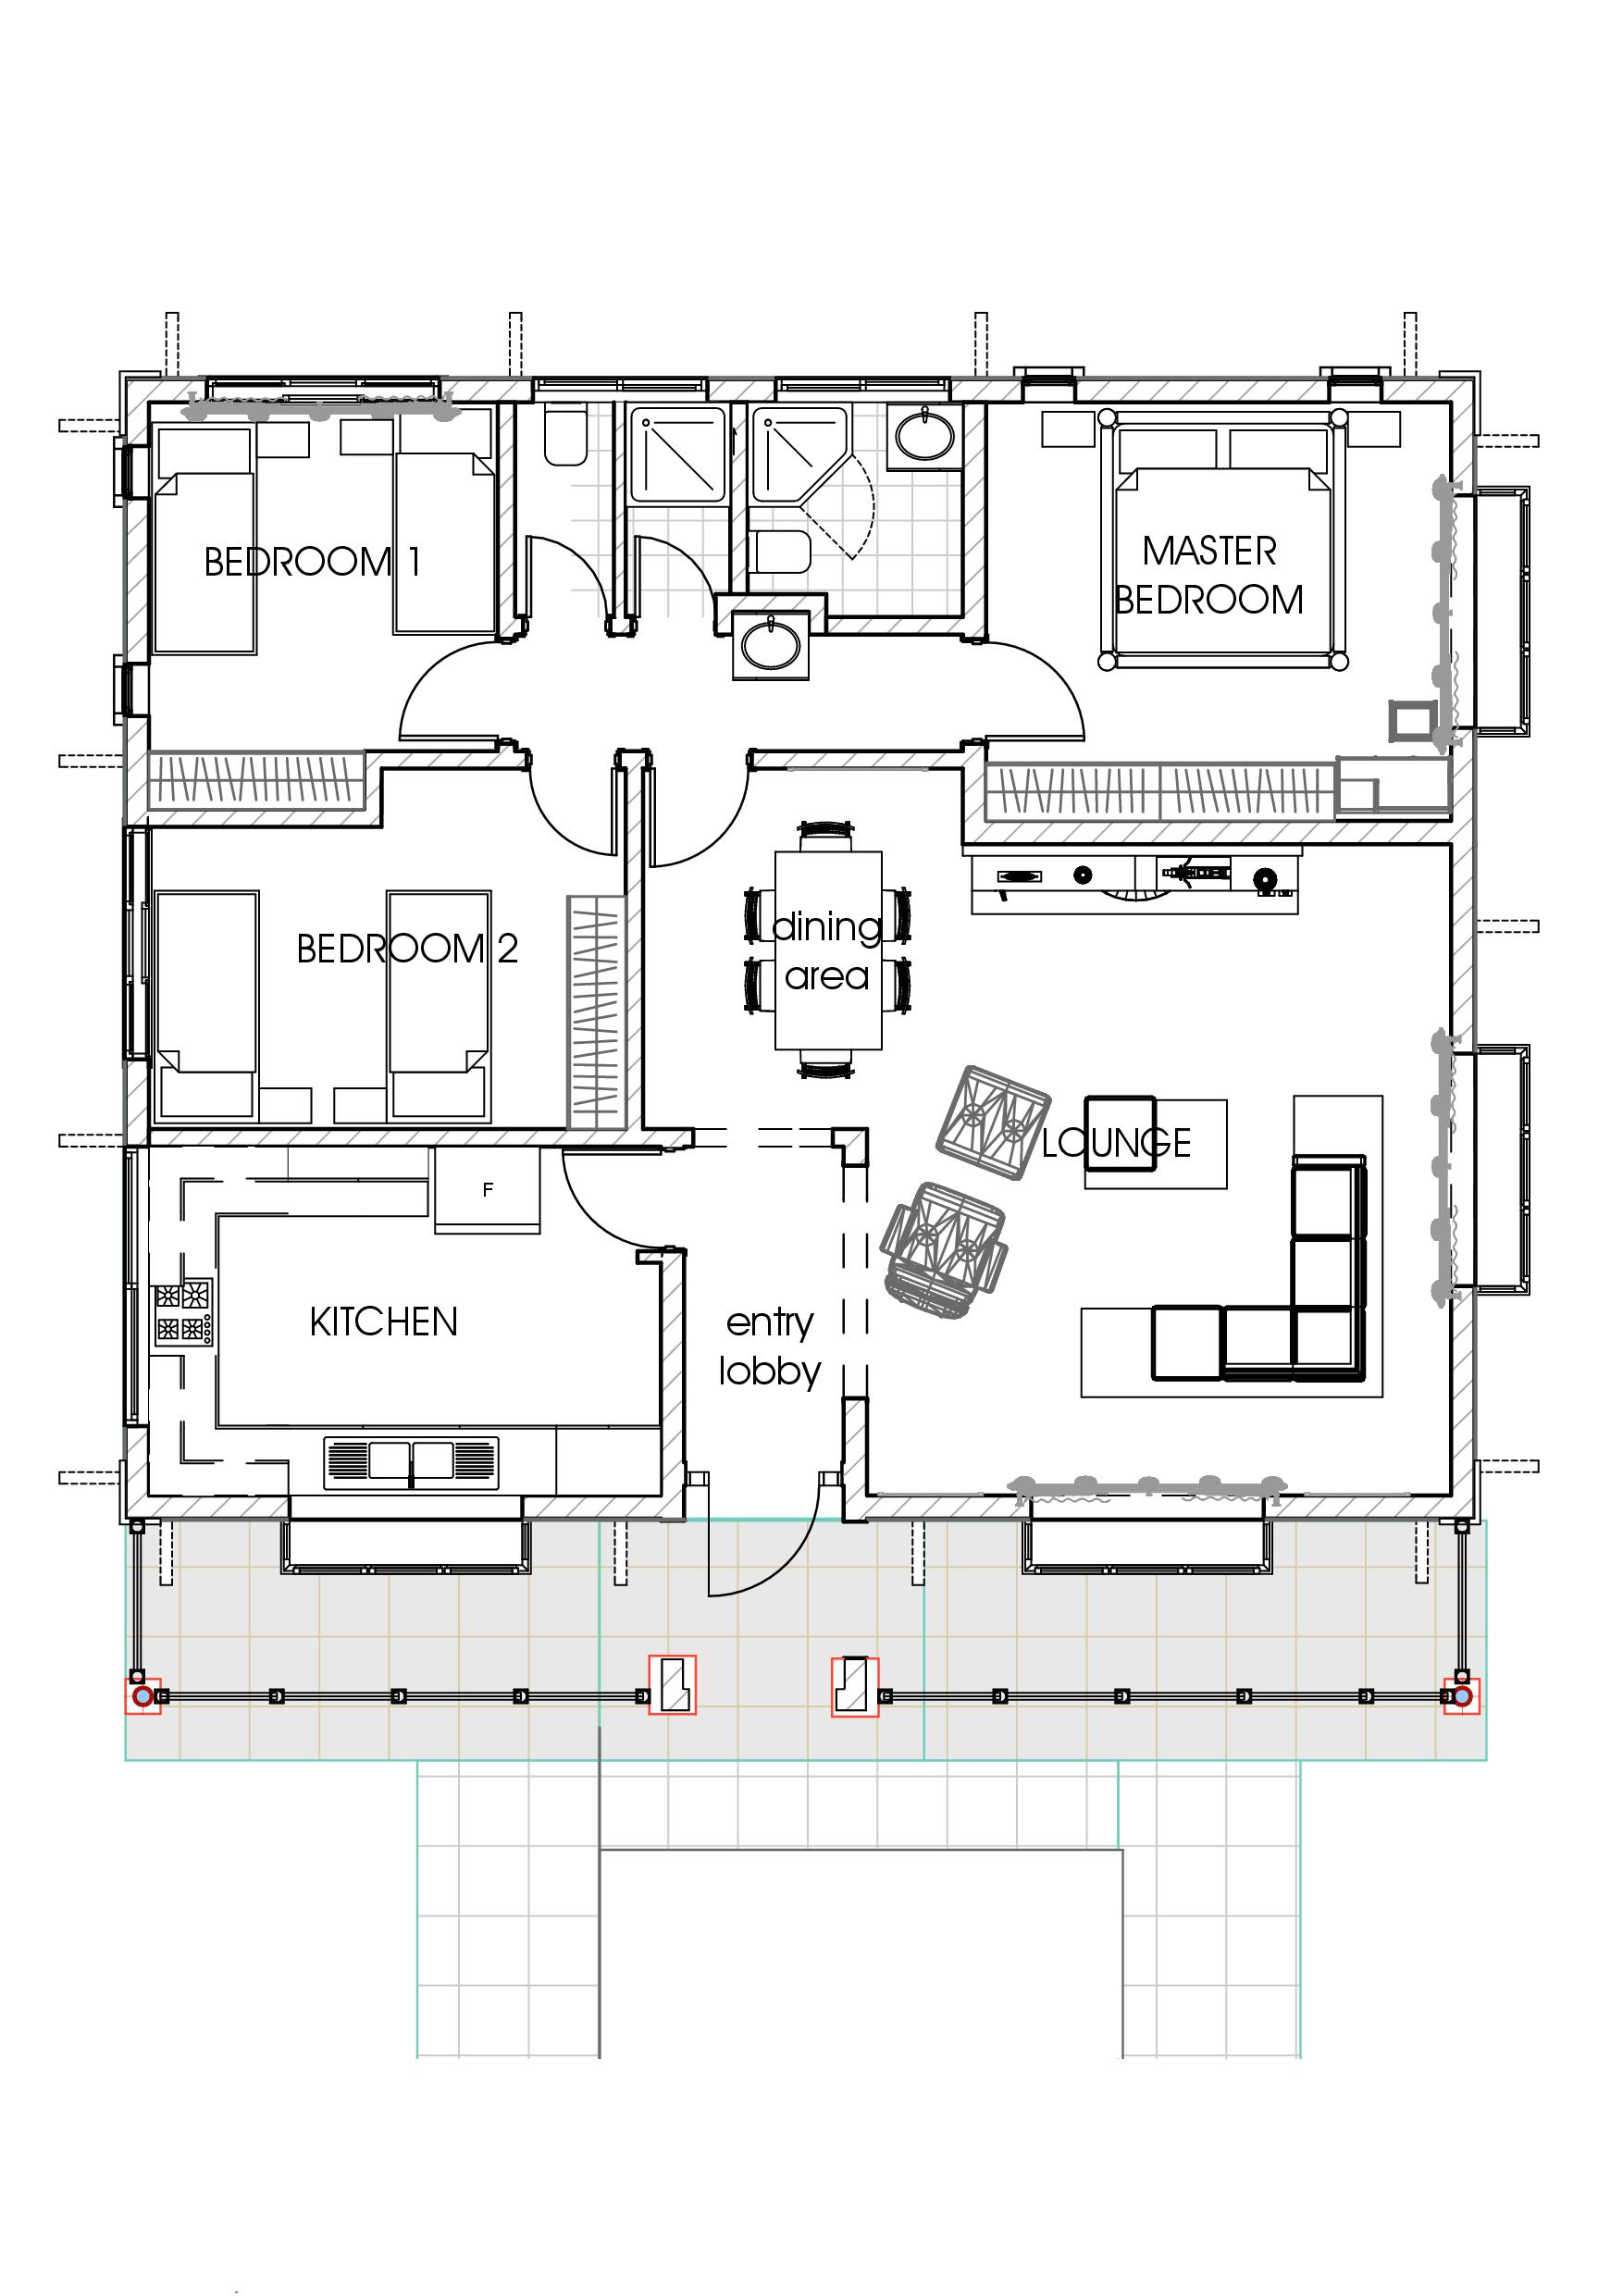 House plans in kenya 3 bedroom bungalow house plan for The house plans